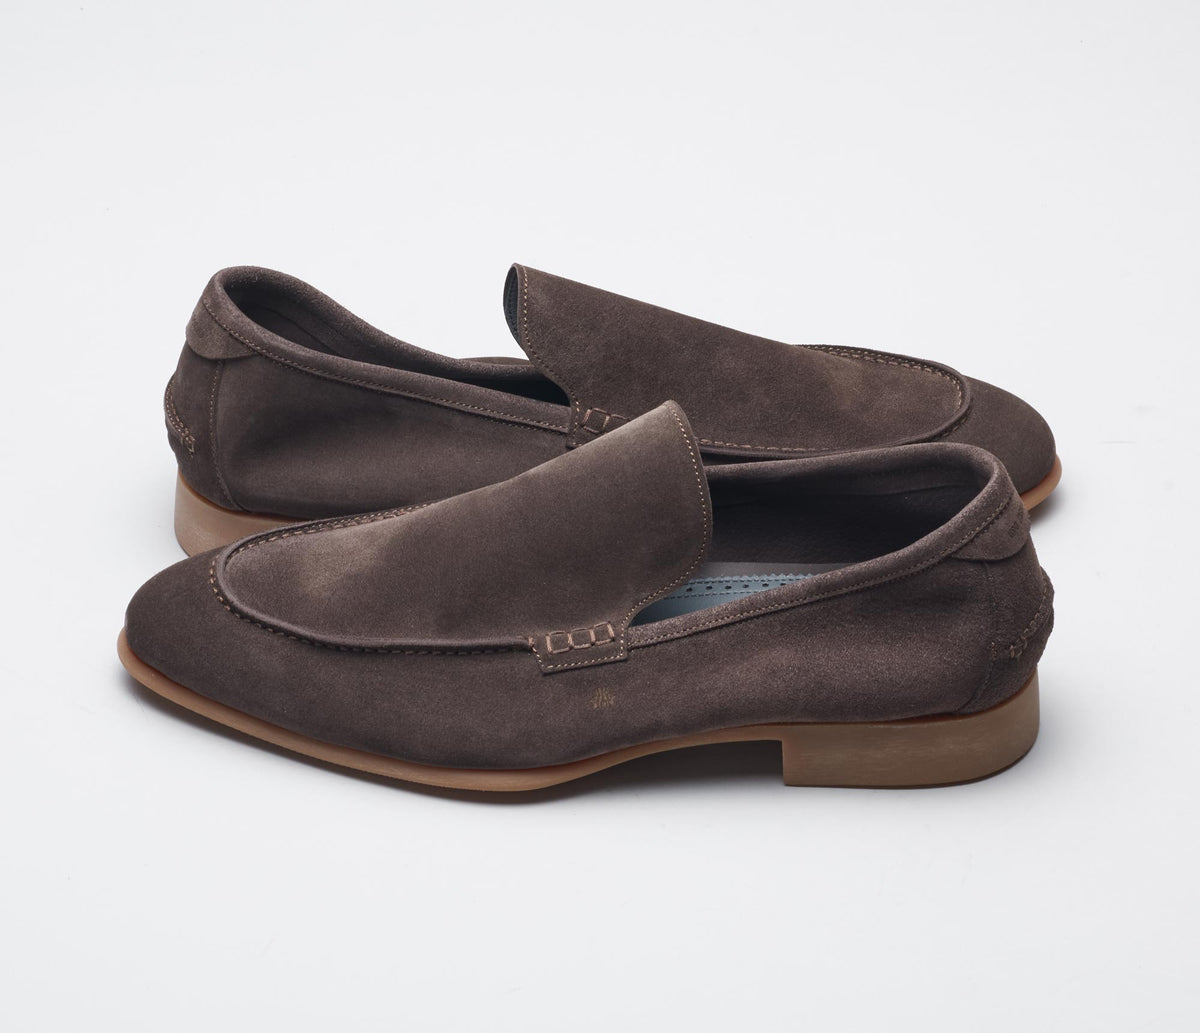 The Etna Moka Men's Suede Loafers